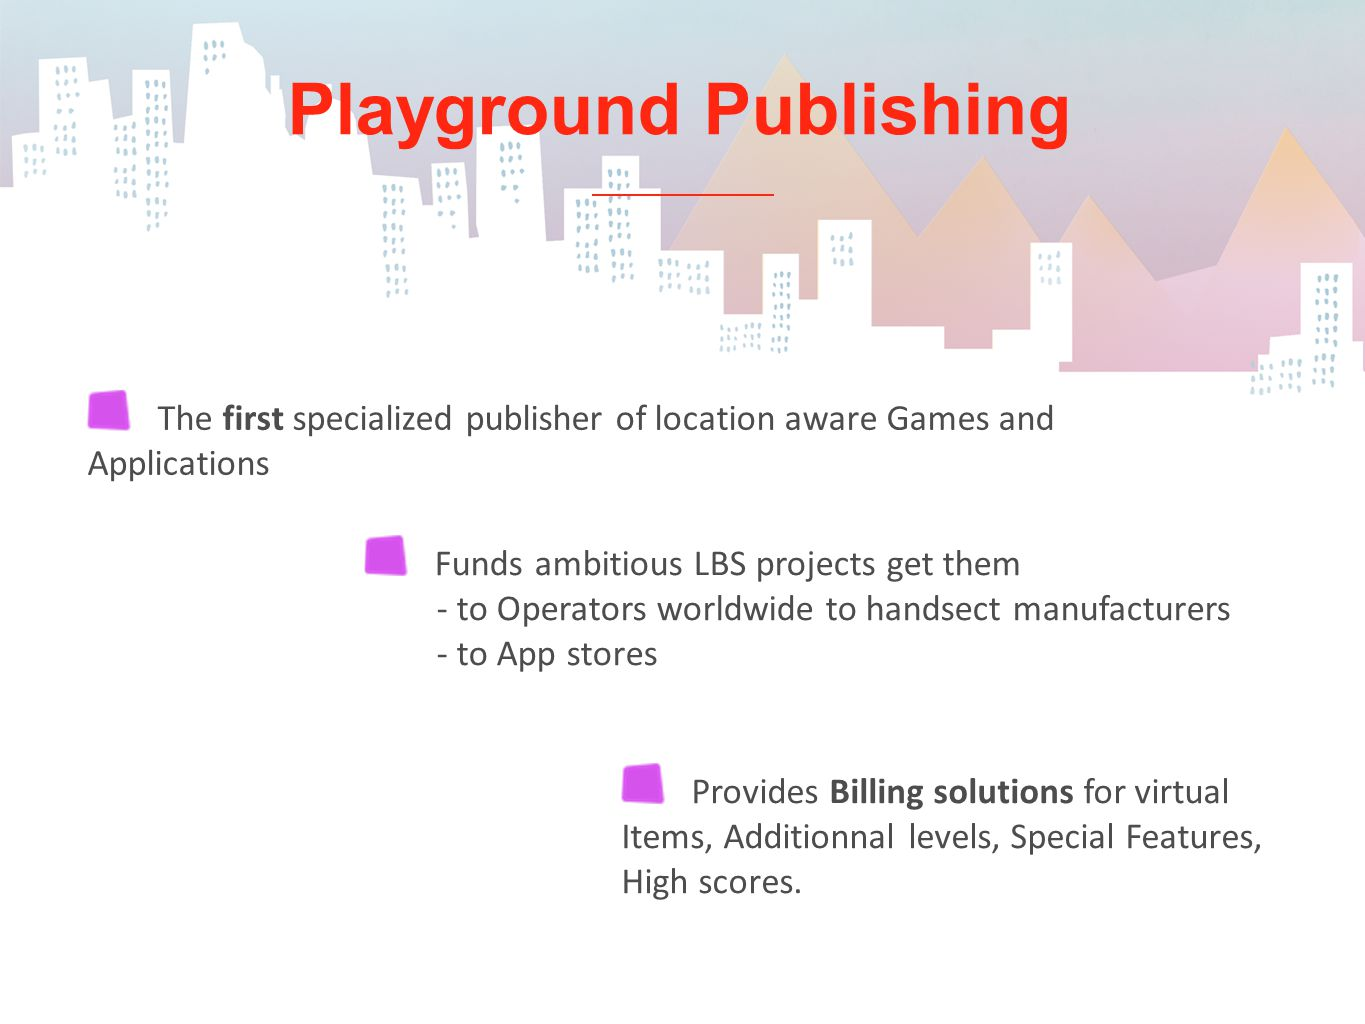 Playground Publishing Provides Billing solutions for virtual Items, Additionnal levels, Special Features, High scores.